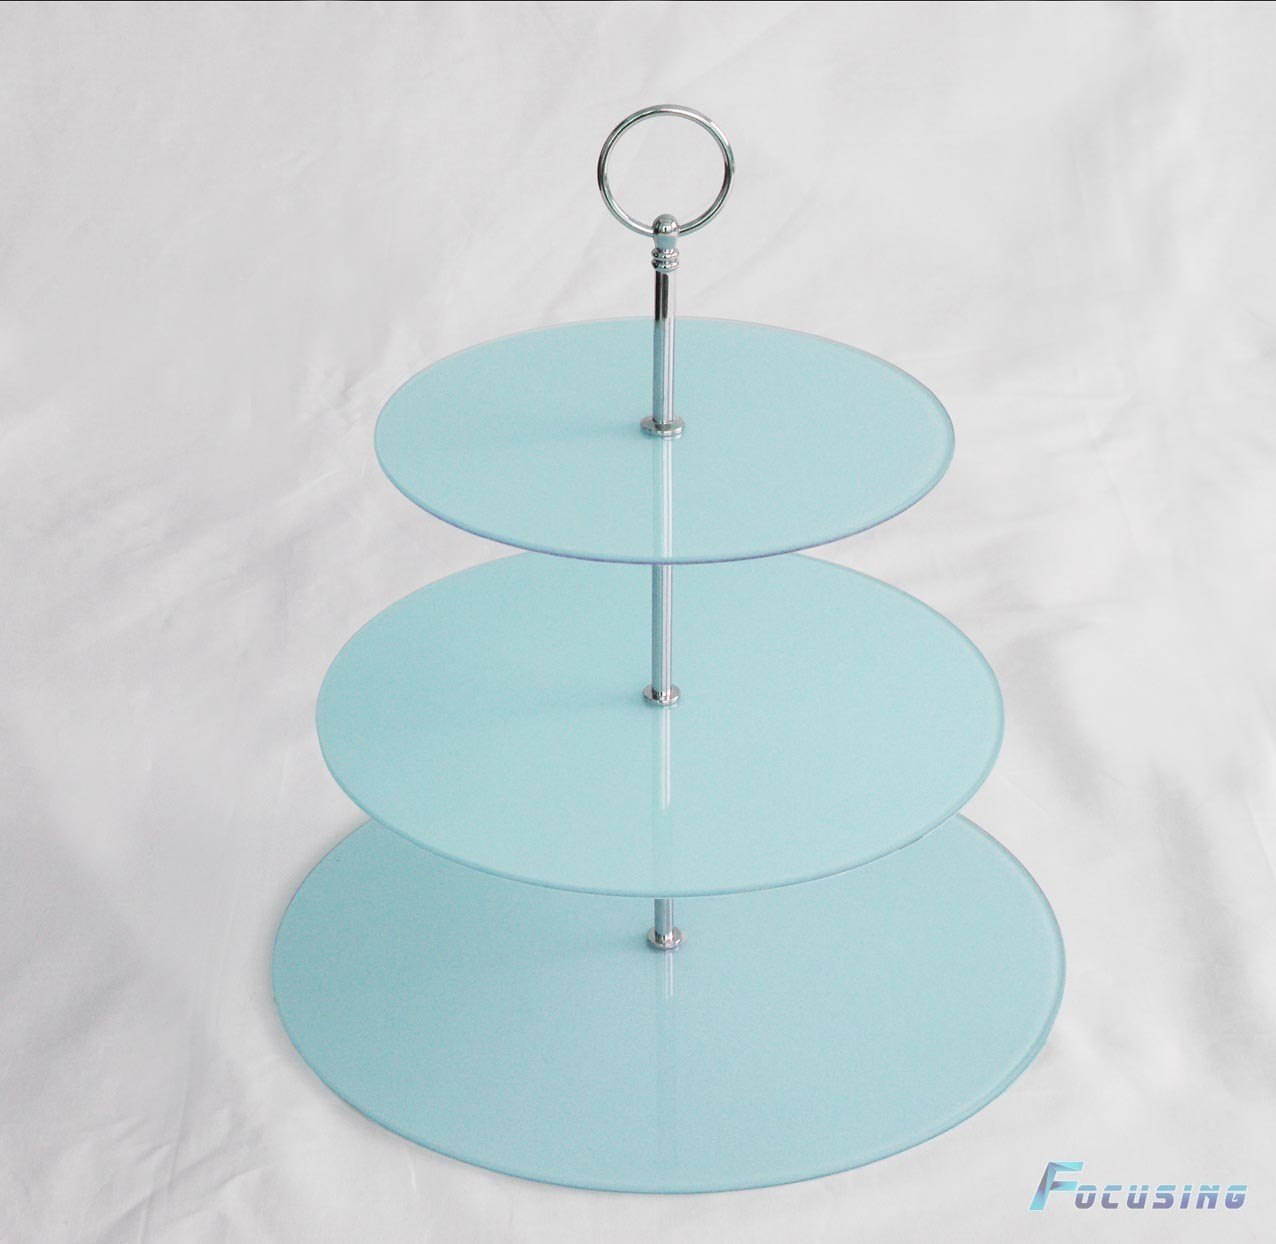 China blue color 3 tier round tempered glass cake stand for Colored glass cake stand